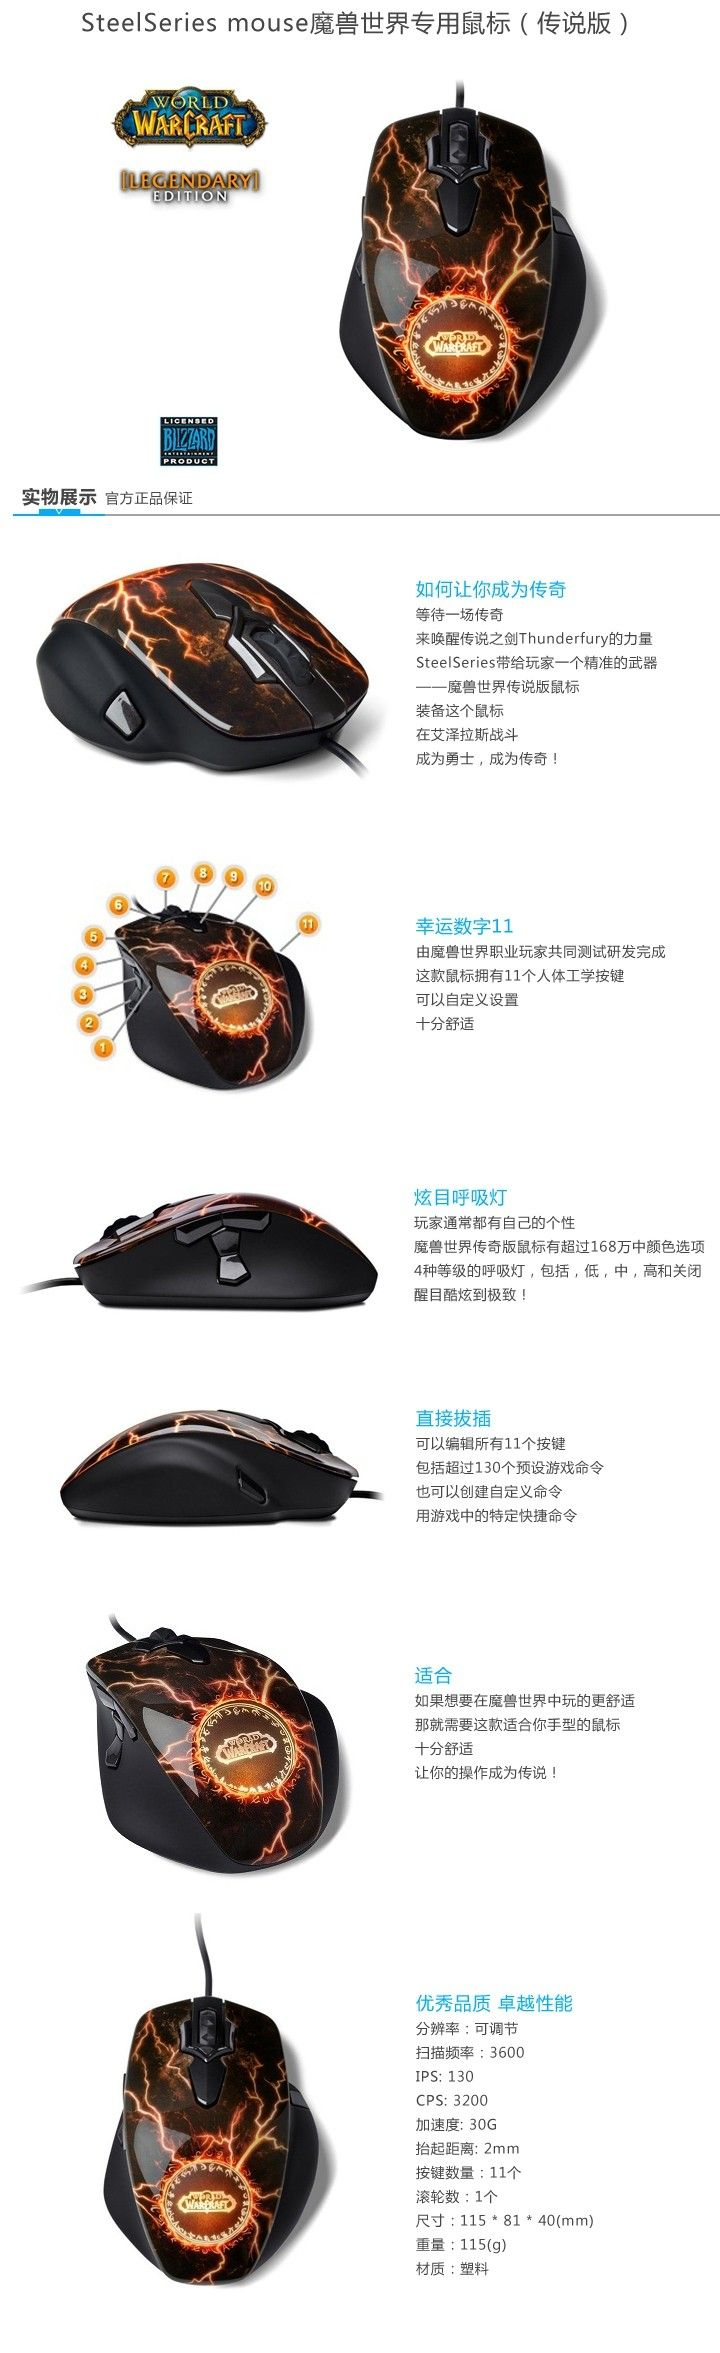 Hot selling SteelSeries WOW Legendary MMO Gaming Mouse Professional USB Optical gaming wired mouse for computer free shipping - http://www.pcbuild.guru/products/hot-selling-steelseries-wow-legendary-mmo-gaming-mouse-professional-usb-optical-gaming-wired-mouse-for-computer-free-shipping/